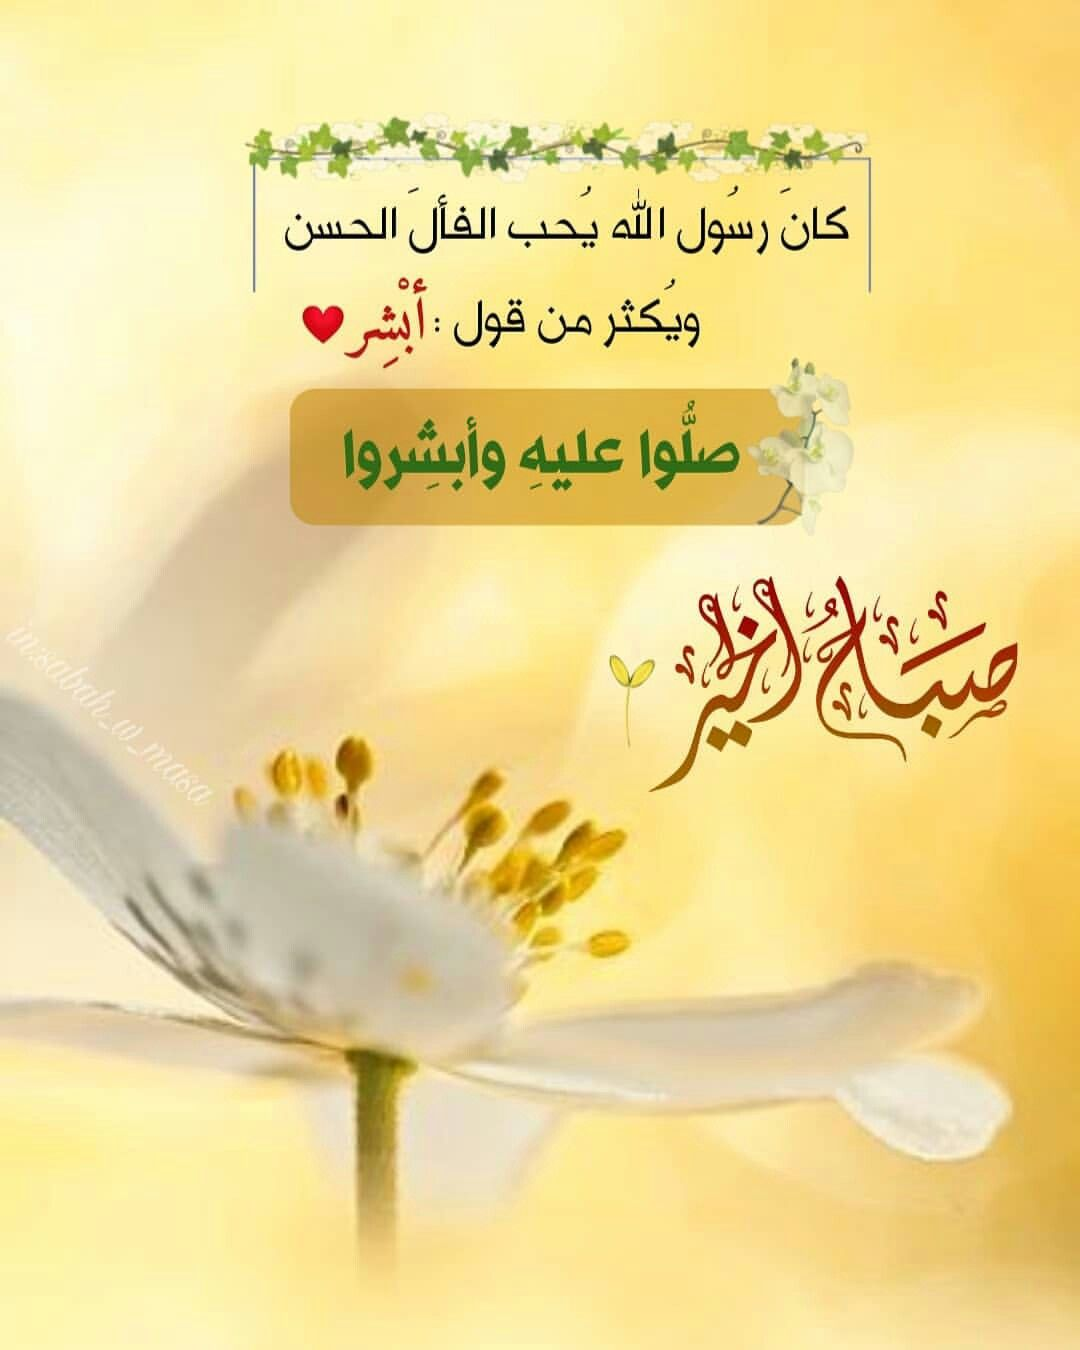 Pin By Laila Alich On صباحيات Beautiful Morning Messages Good Morning Arabic Good Morning Wishes